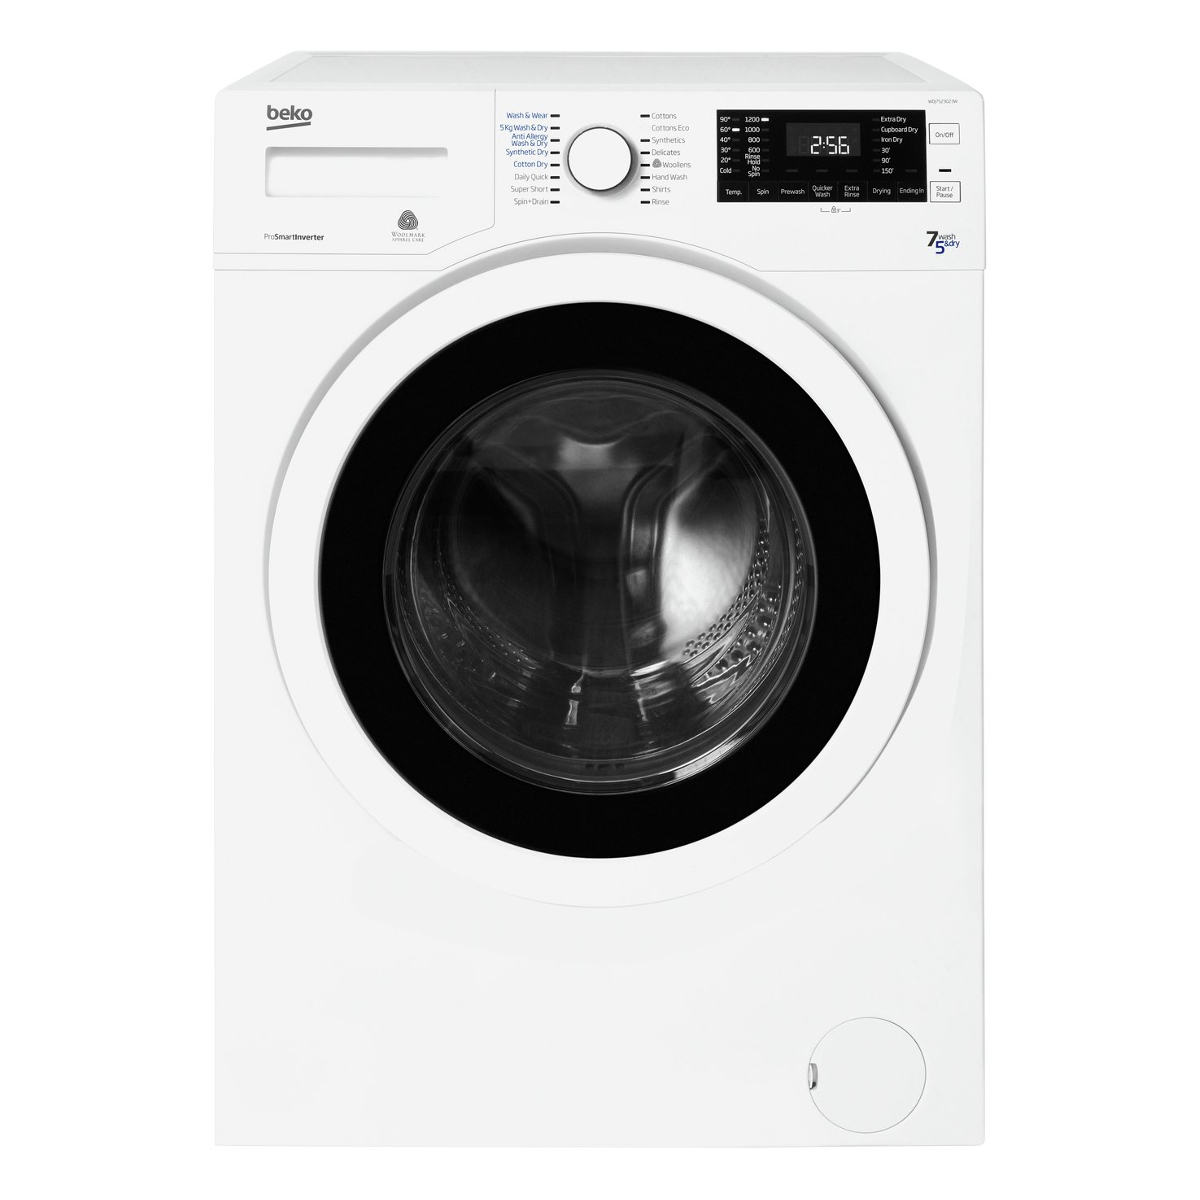 Hotpoint Slow Juicer John Lewis : Beko WDJ7523023W Freestanding Washer Dryer with 7kg Wash and 5kg Dry Load Capacity in White Hughes